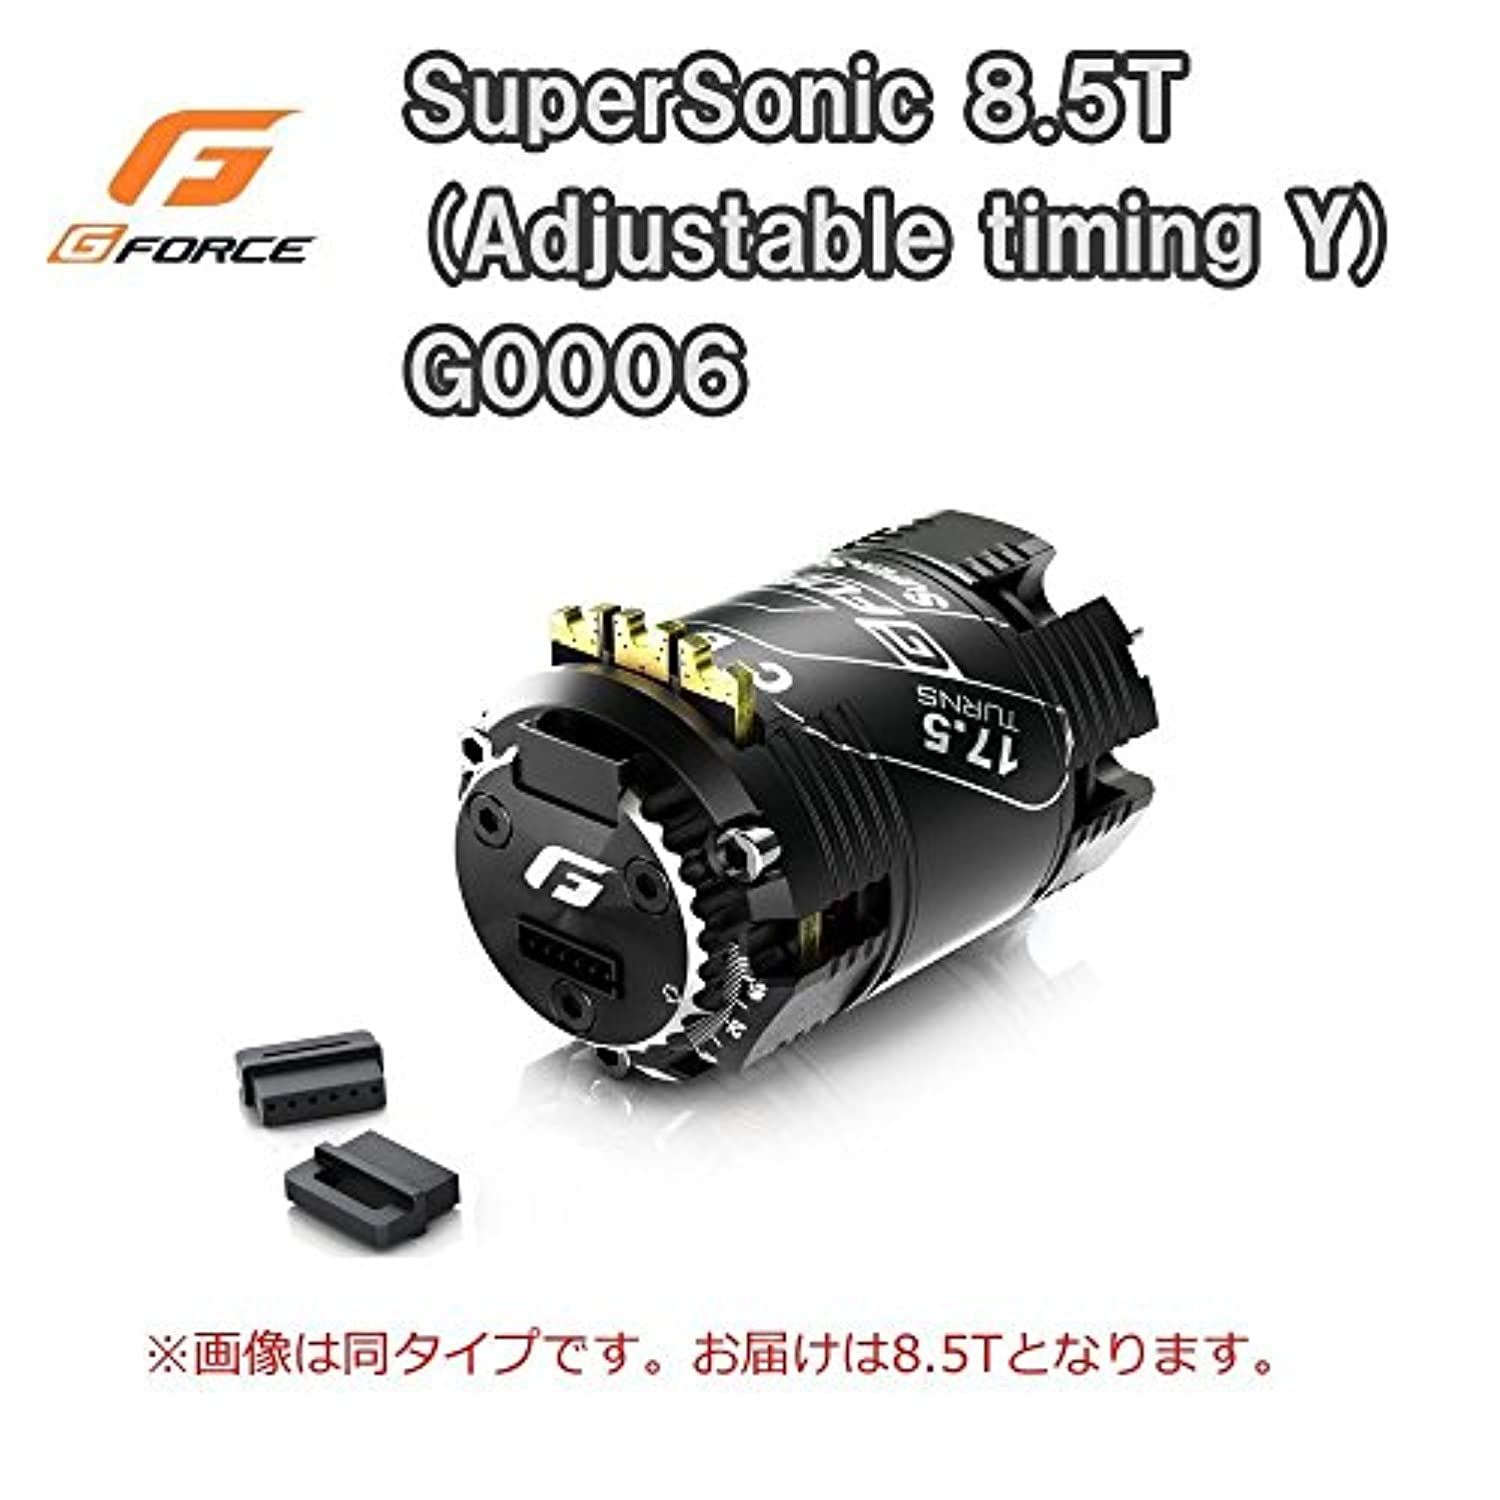 G-FORCE ジーフォース SuperSonic 8.5T(Adjustable timing Y) G0006